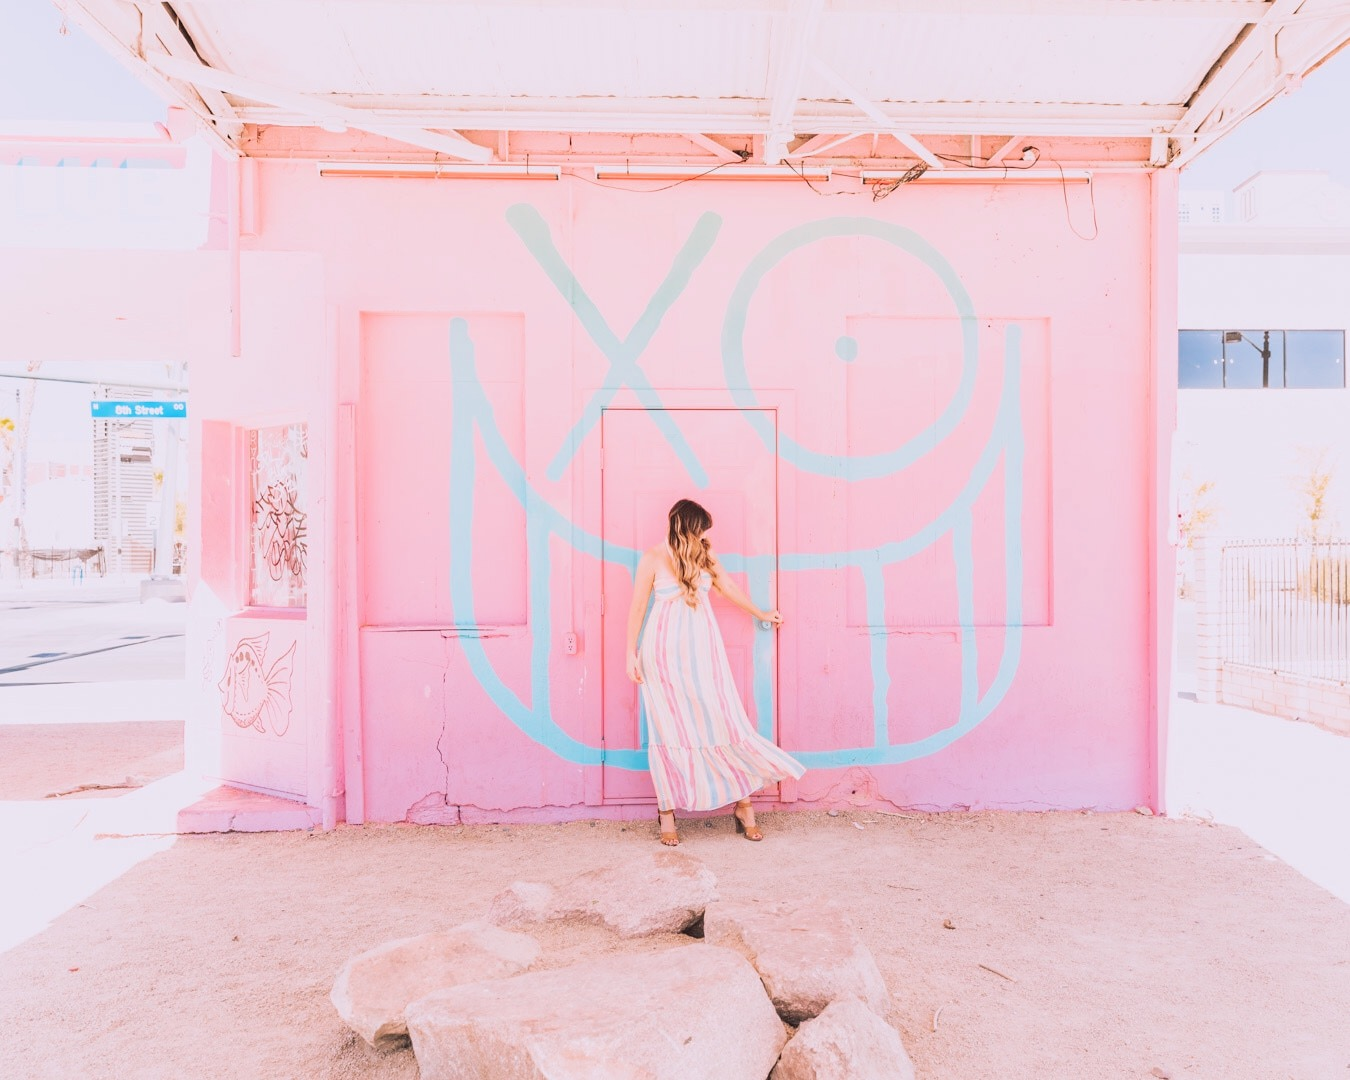 vegas pink life is beautiful art and music festival building.JPG